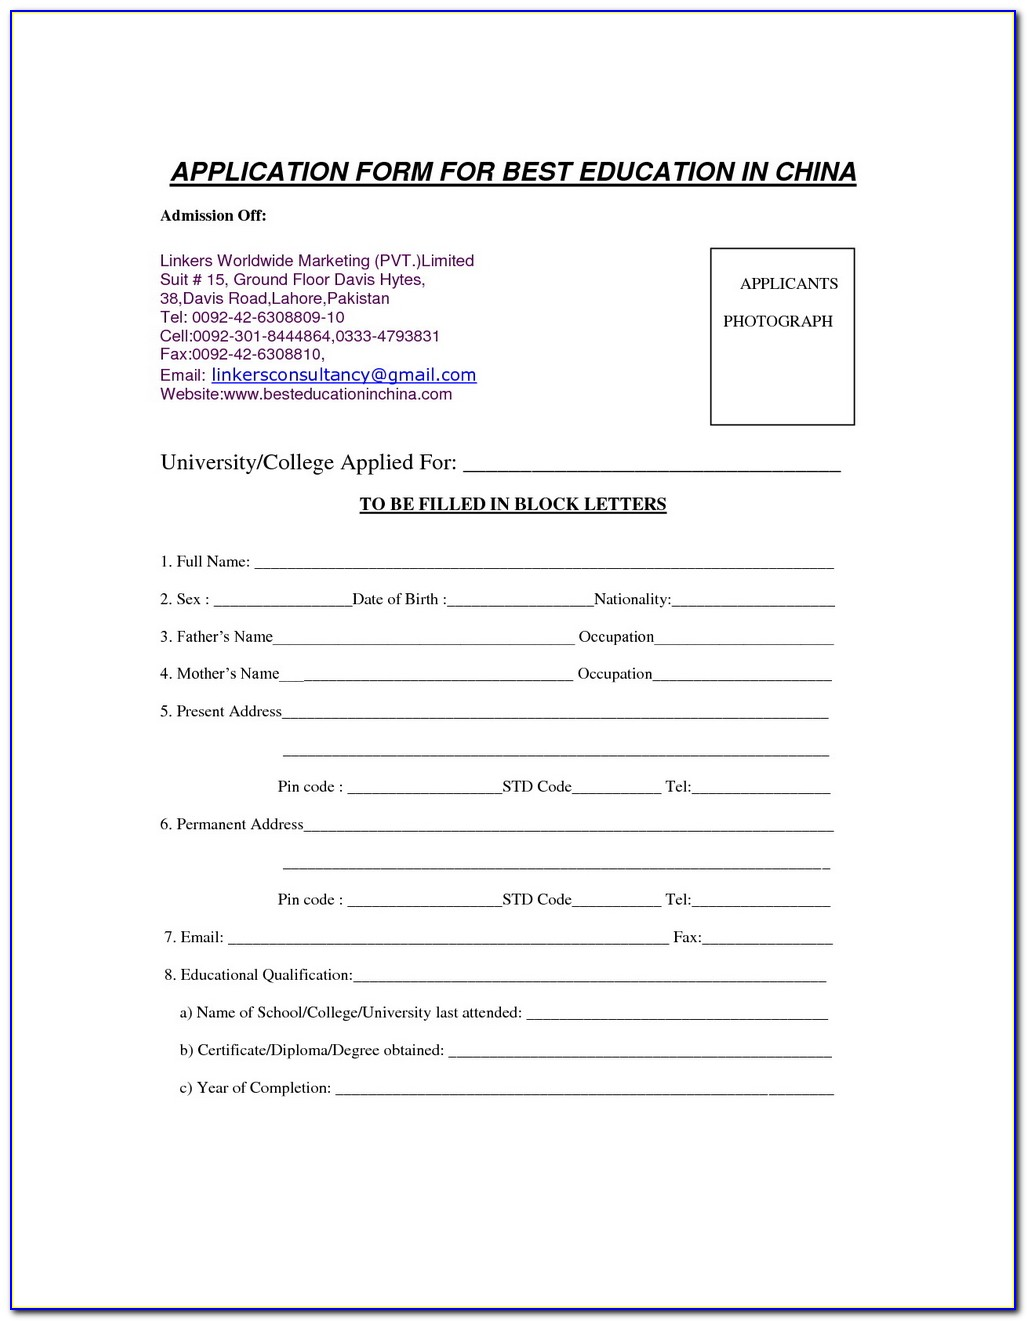 Blank Resume Format Download In Ms Word For Fresher Vincegray2014